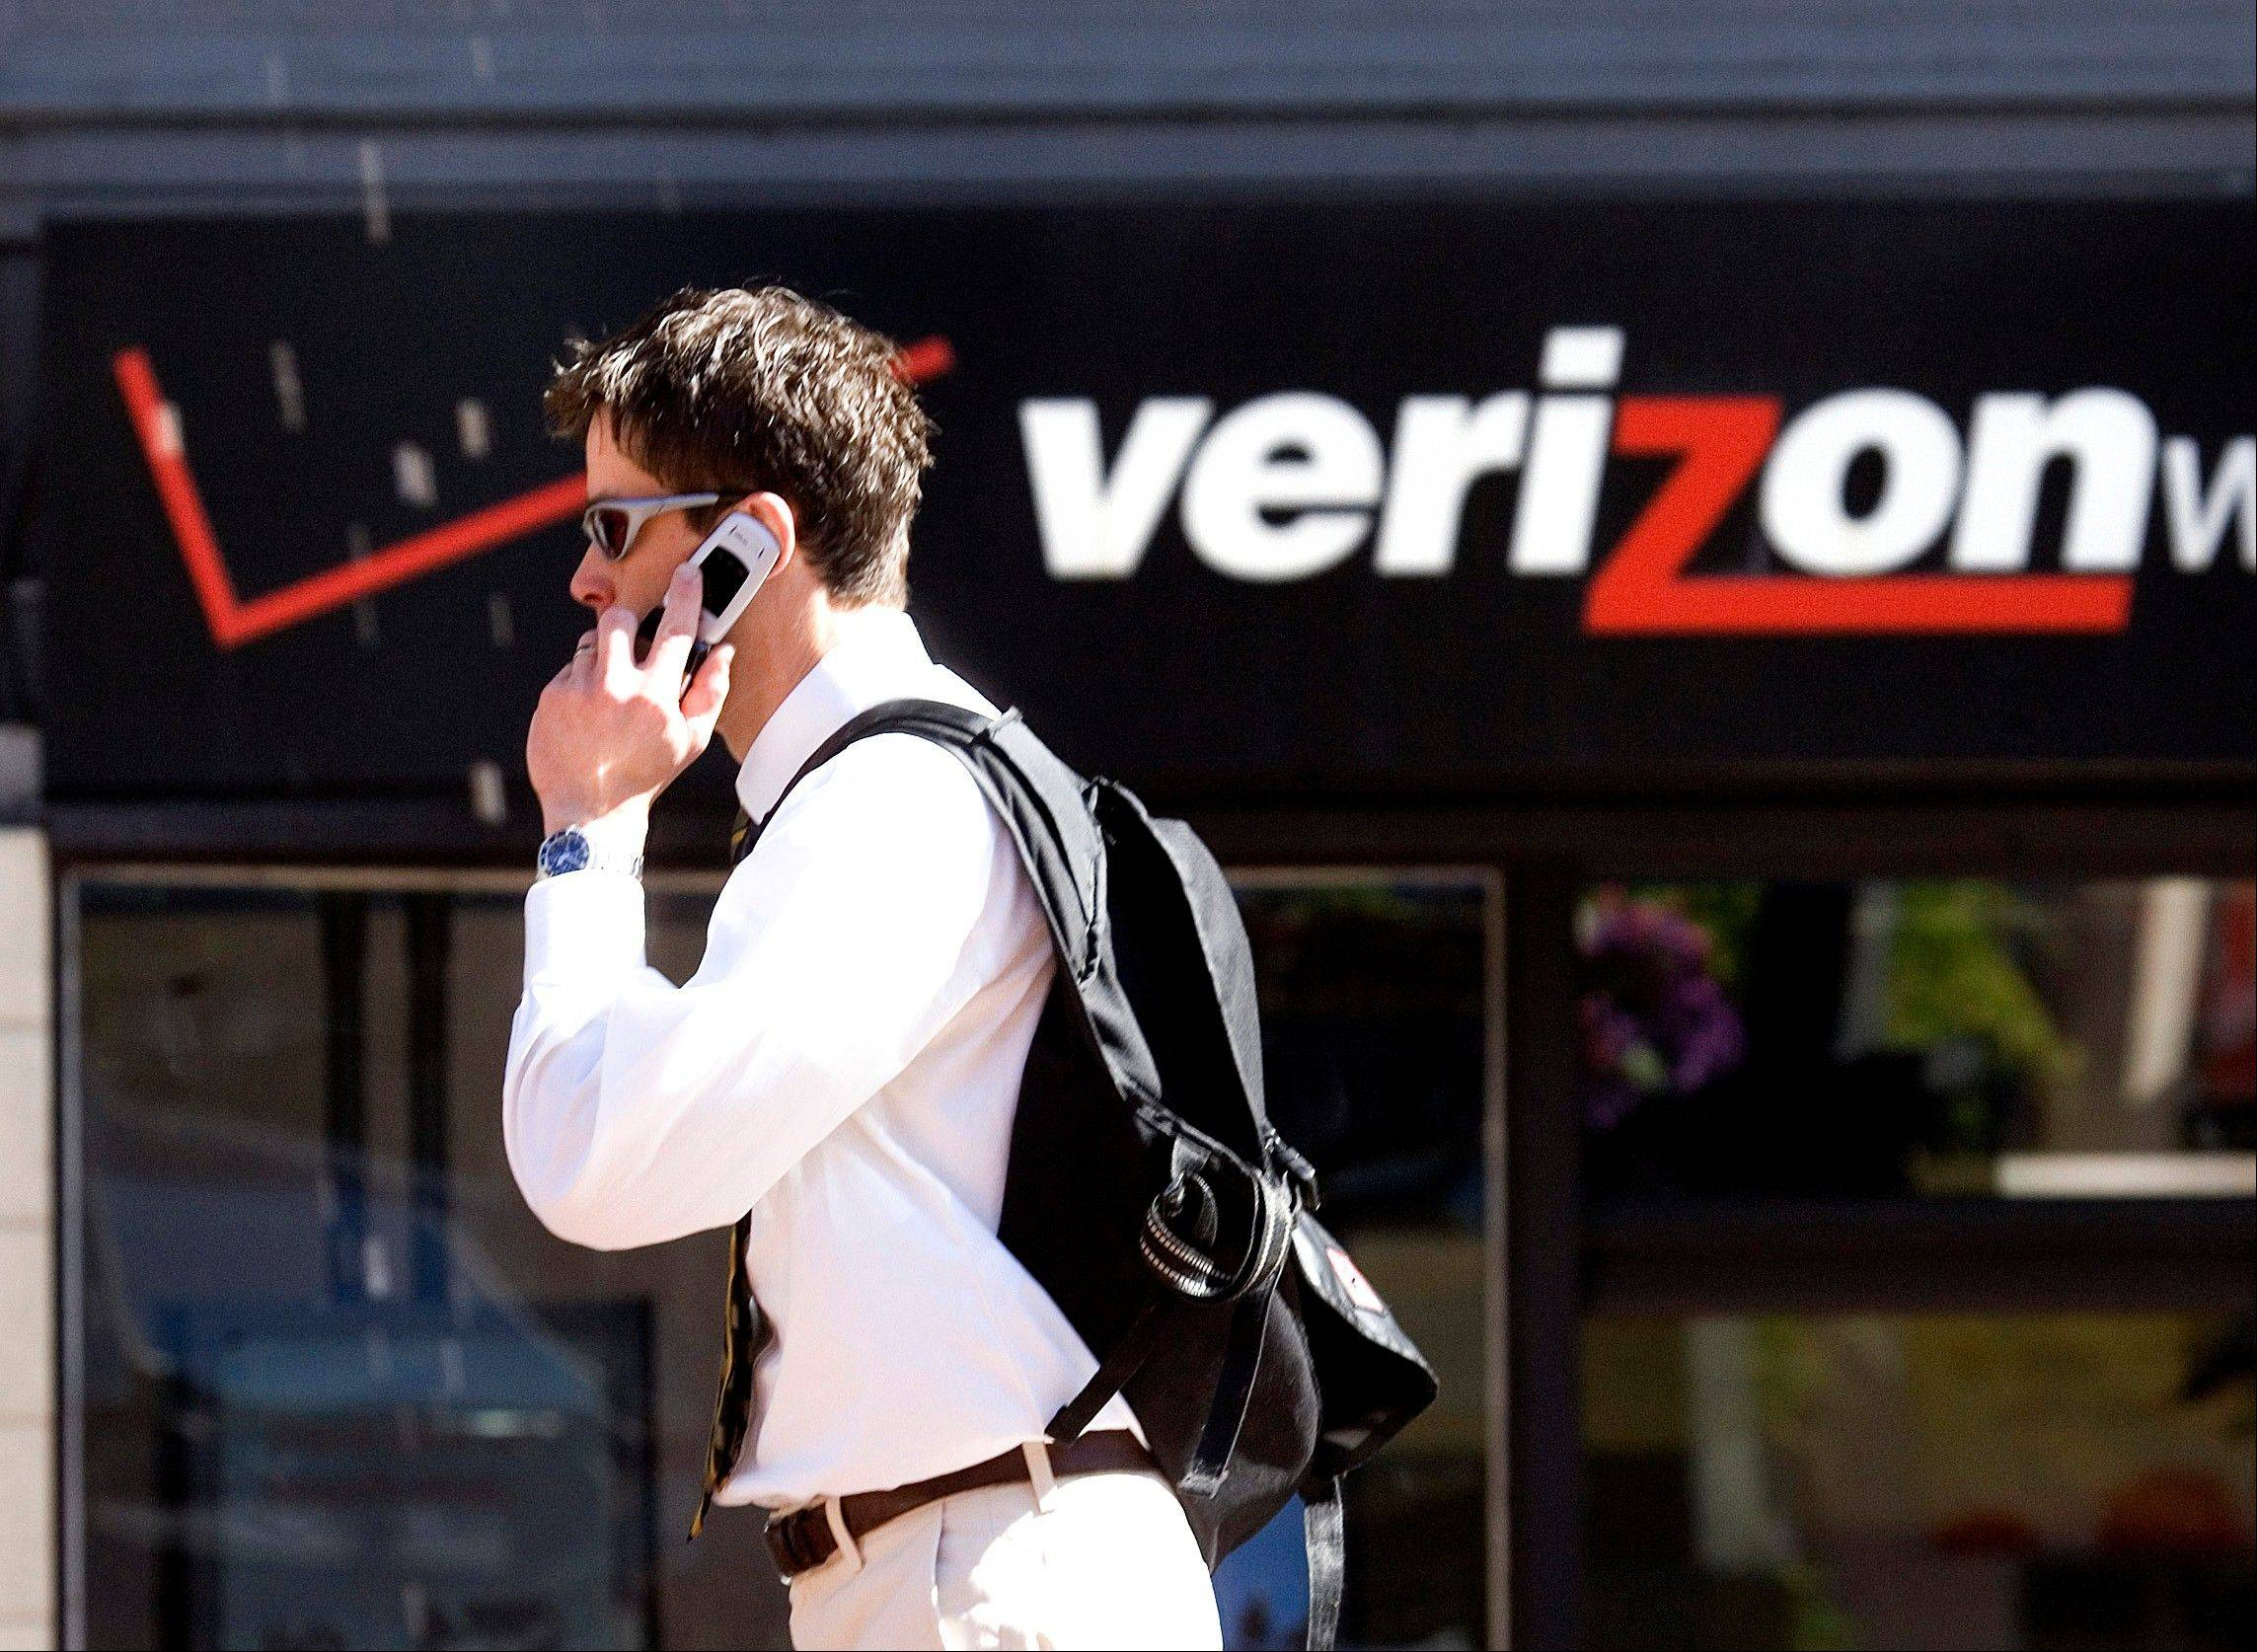 Vodafone says it is in advanced talks to sell its 45 percent stake of Verizon Wireless back to the U.S. cellphone service provider for $130 billion in cash and stock, a deal which would be the second-largest on record if it goes through.